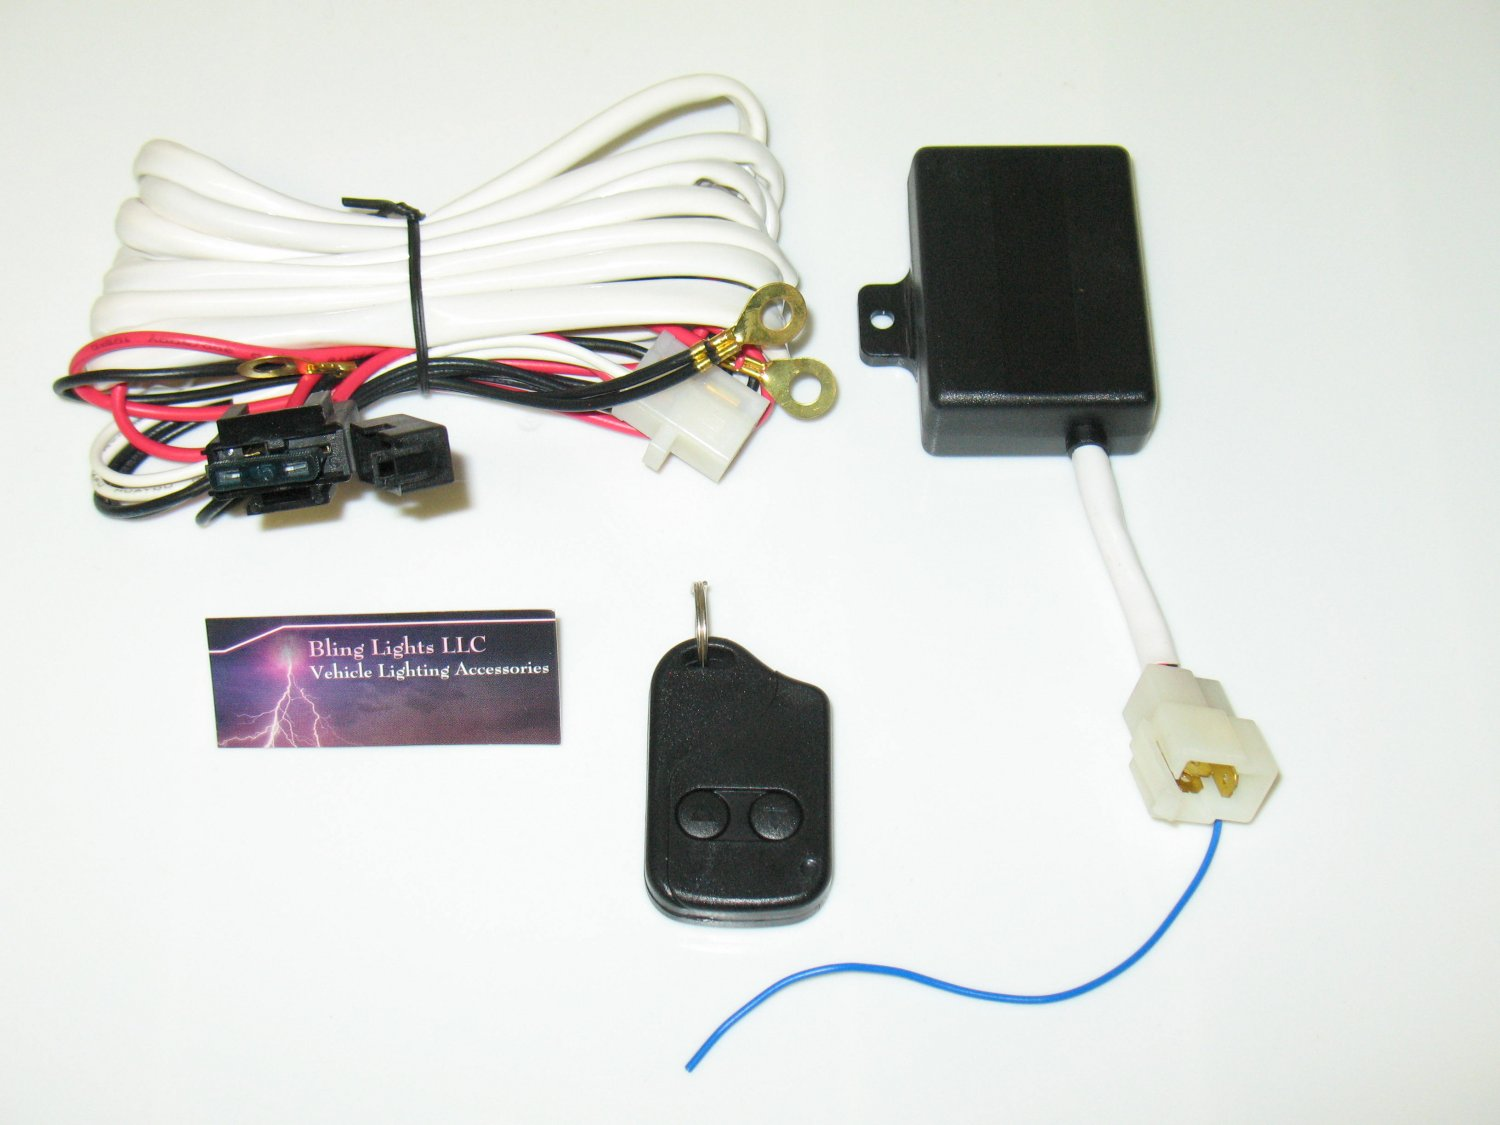 new apc 509109 remote controlled auxiliary light kit wiring harnessnew apc 509109 remote controlled auxiliary light [ 1500 x 1125 Pixel ]